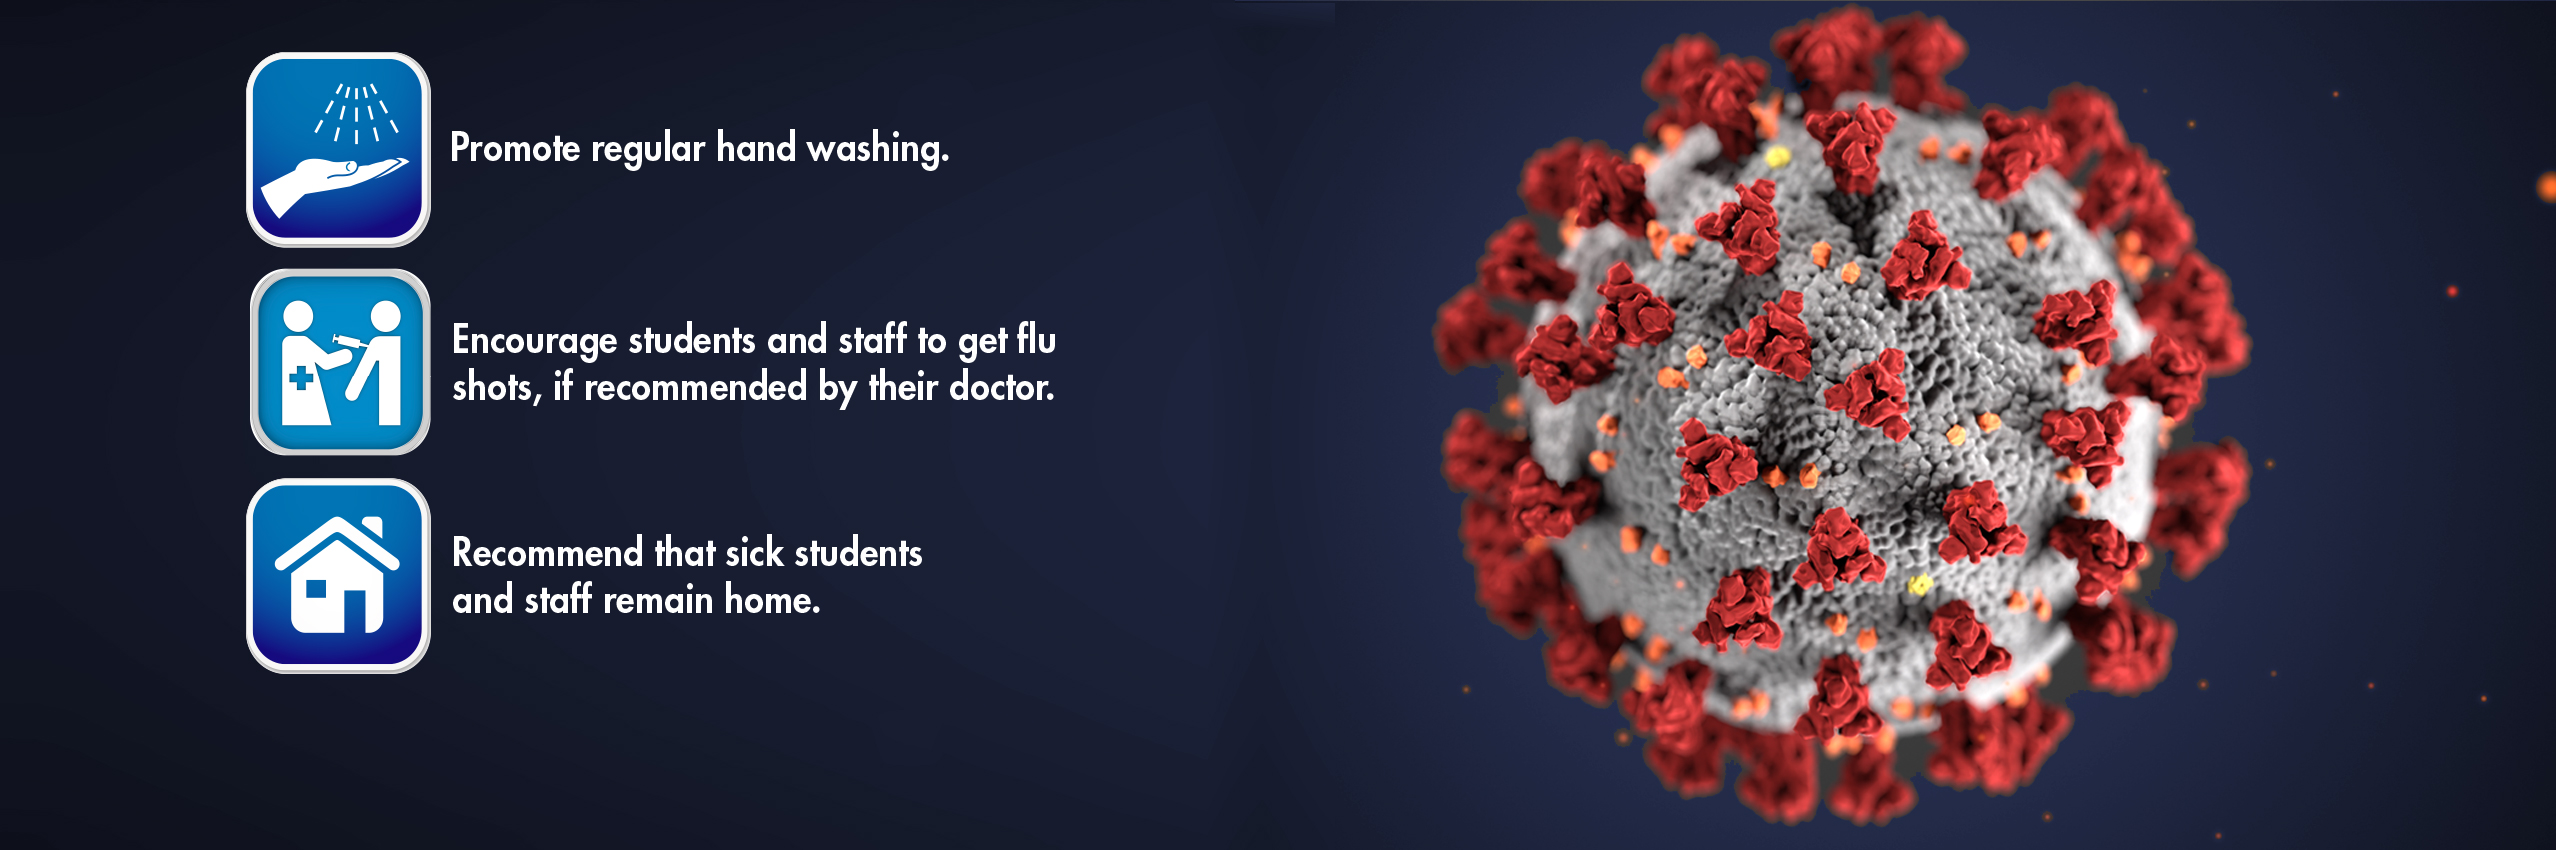 virus-outbreak-everyday-actions